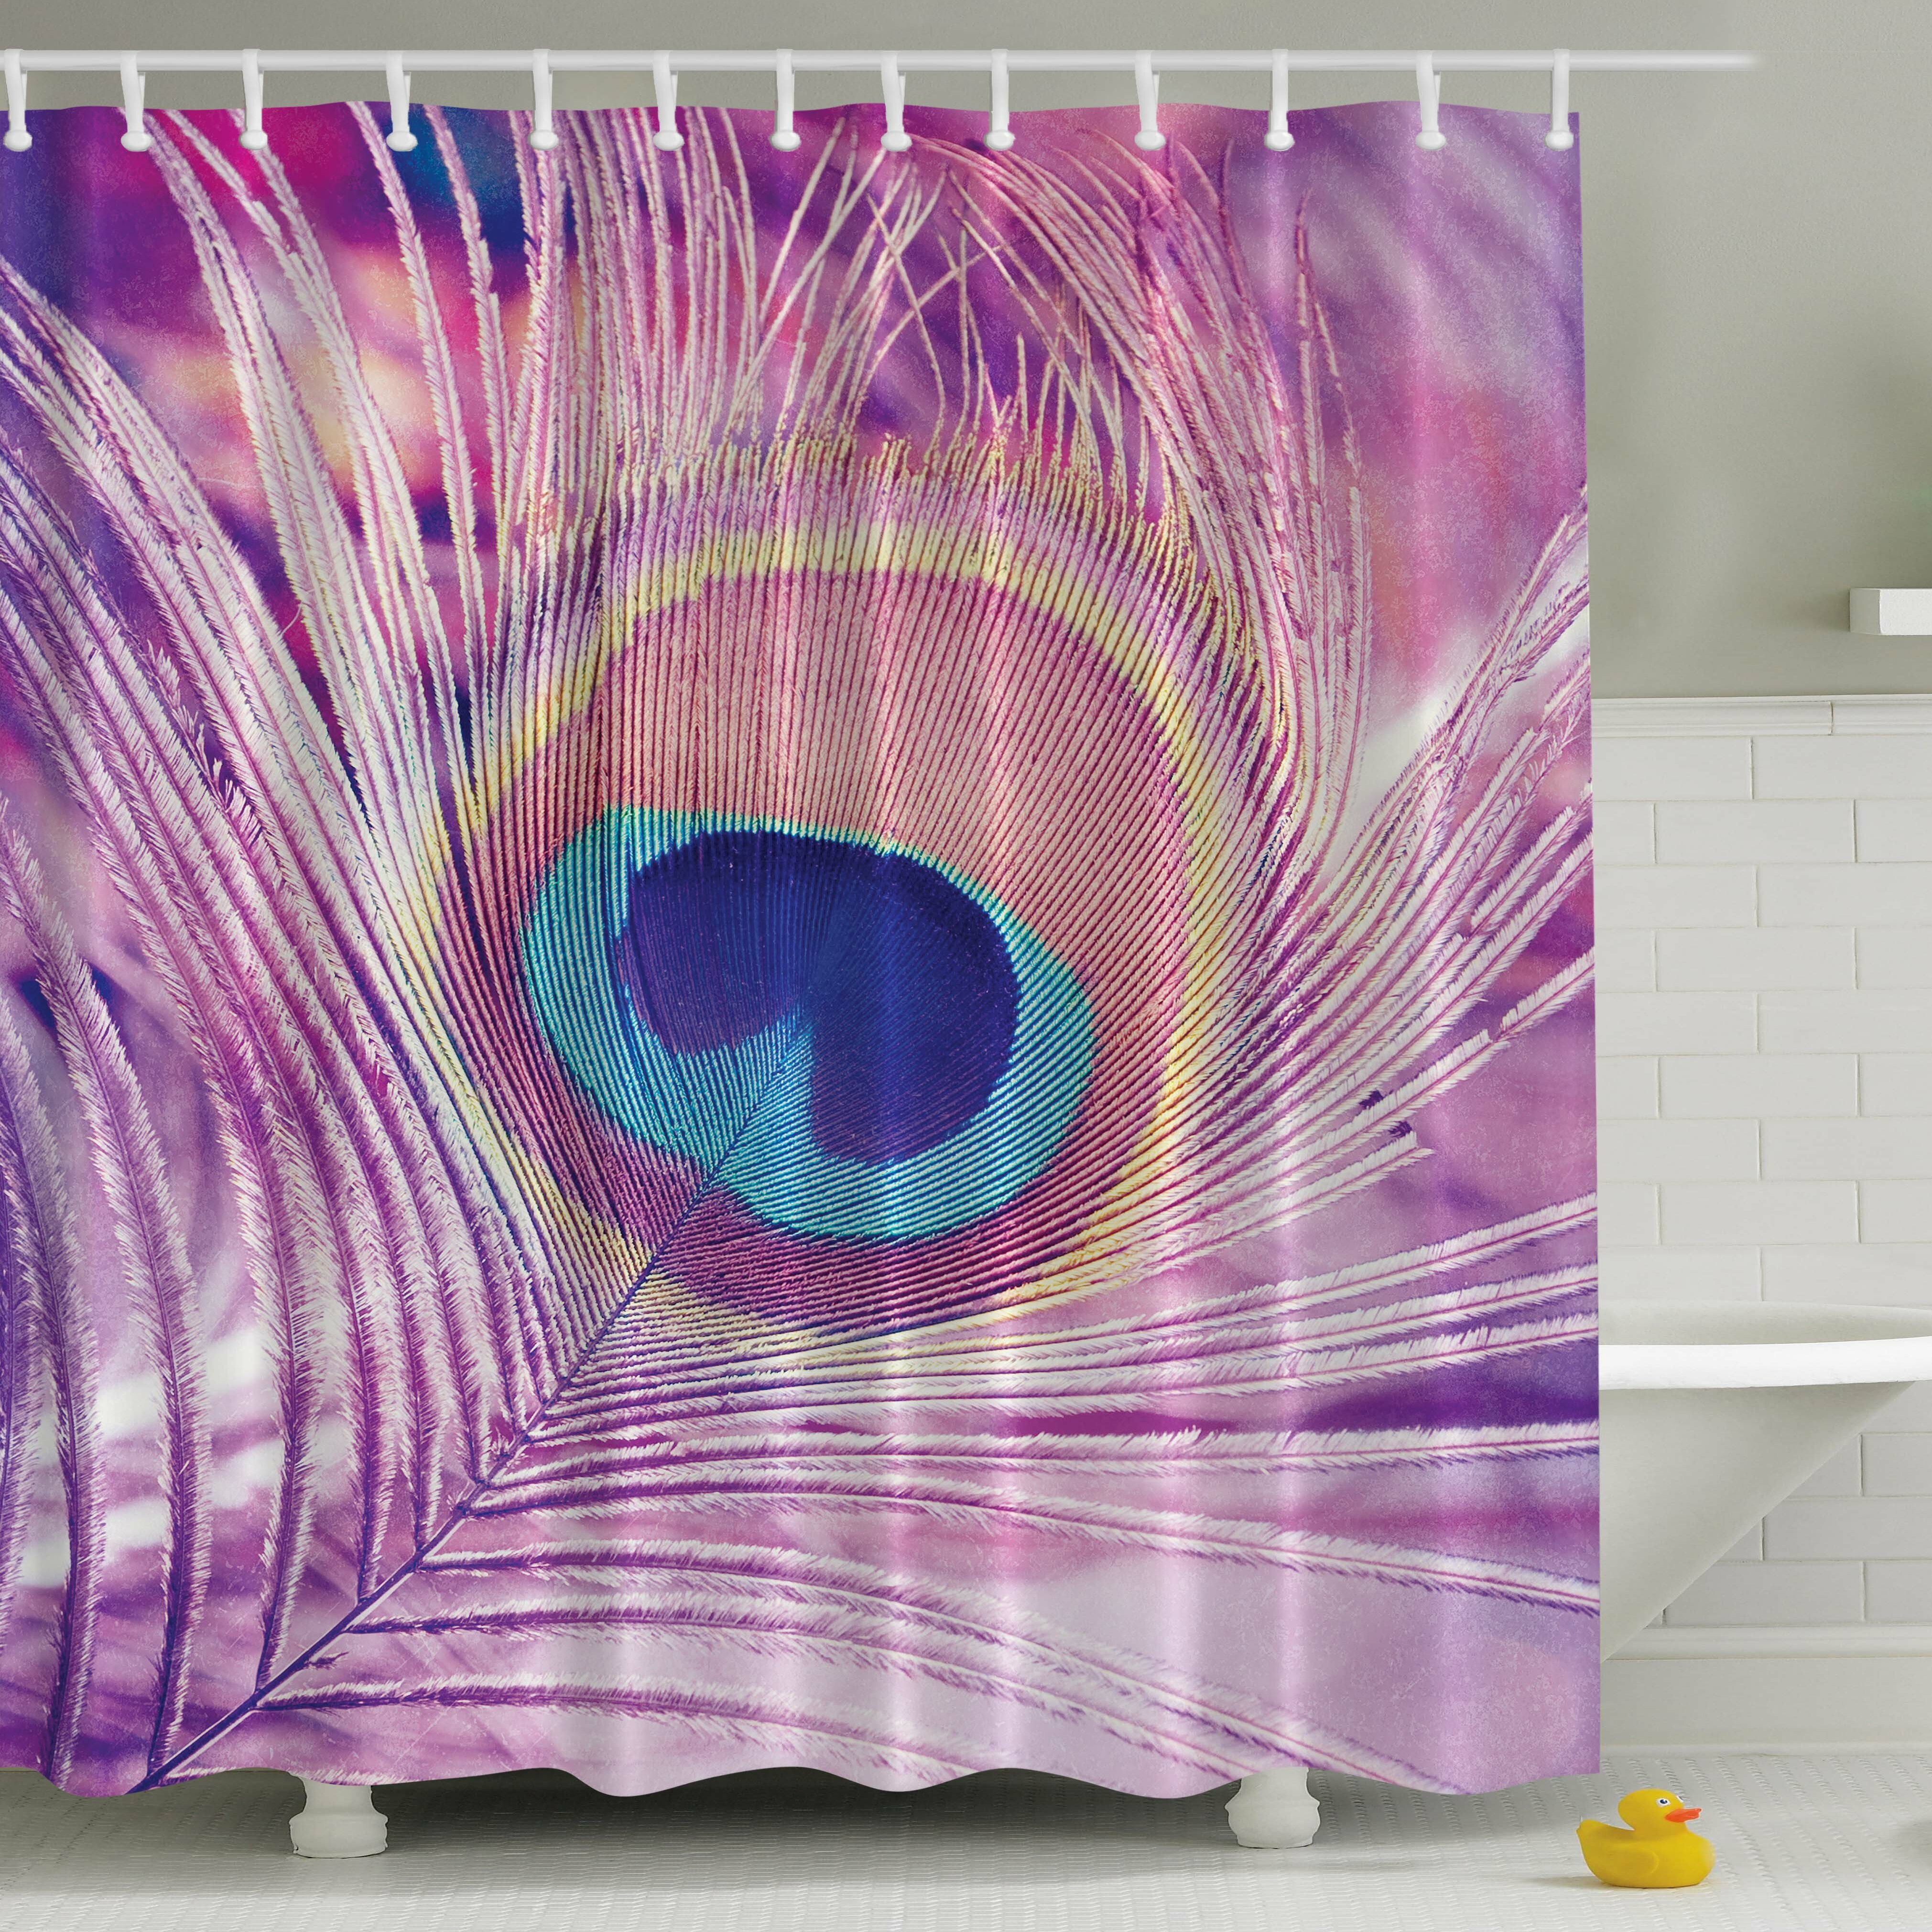 Floral Artwork with Peacock Feather Pattern and Leaf Print Shower Curtain Set